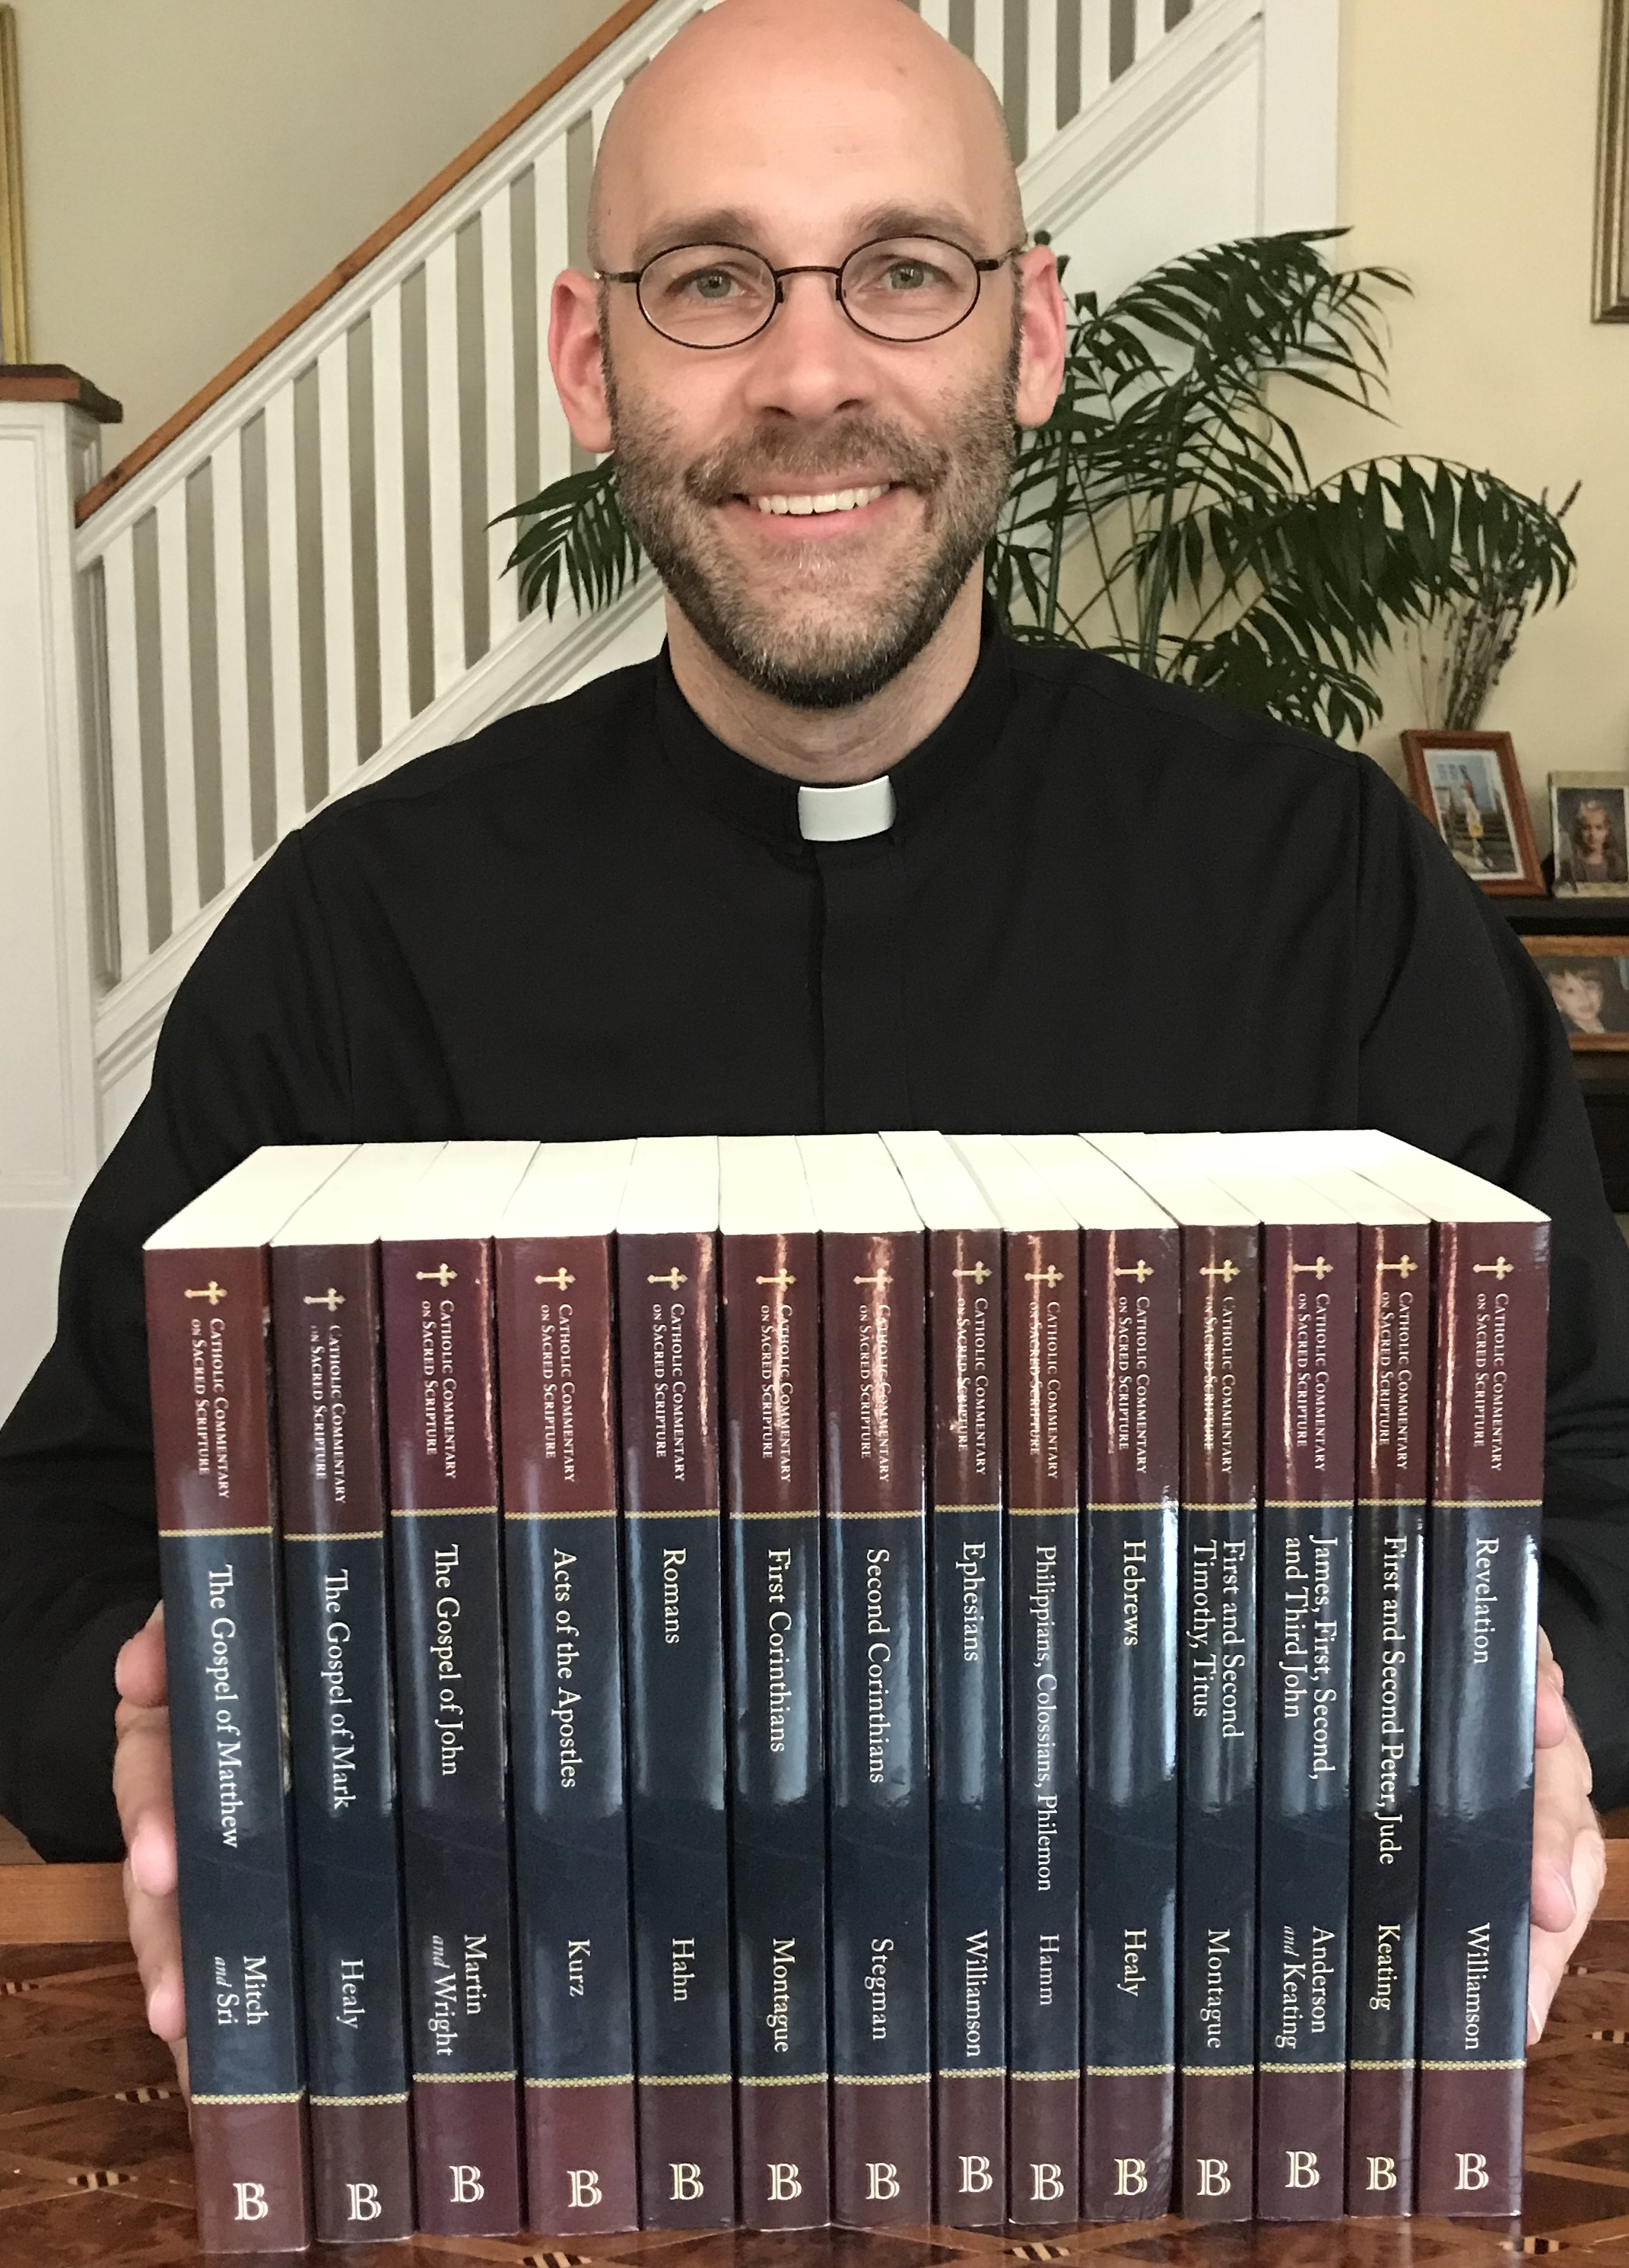 Fr. Jim Smith with his gift set of commentaries